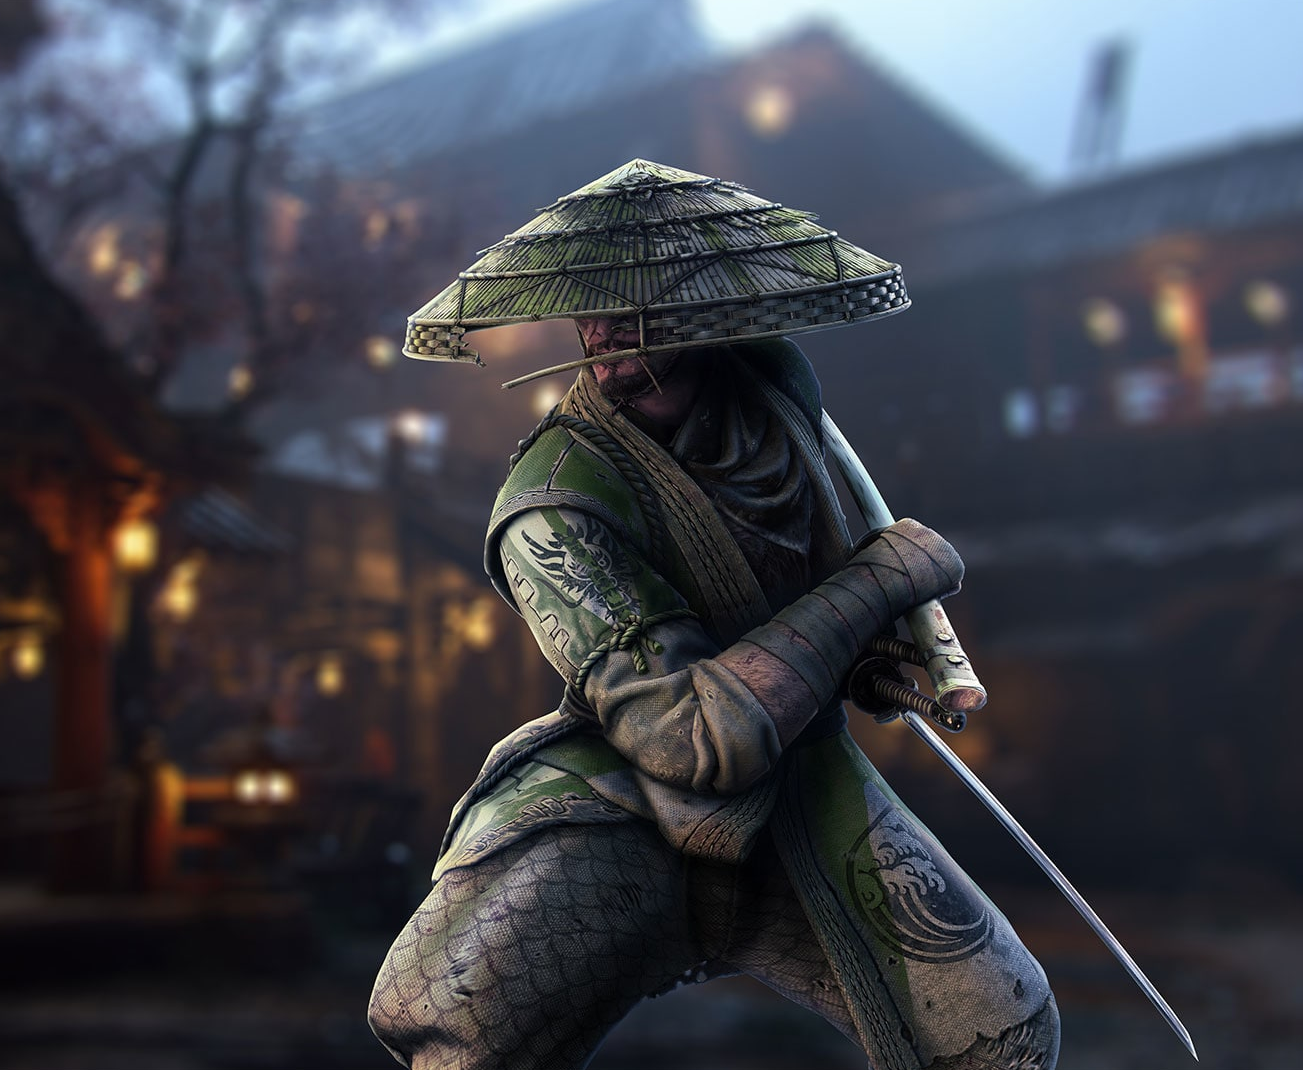 Aramusha | For Honor Wiki | FANDOM powered by Wikia